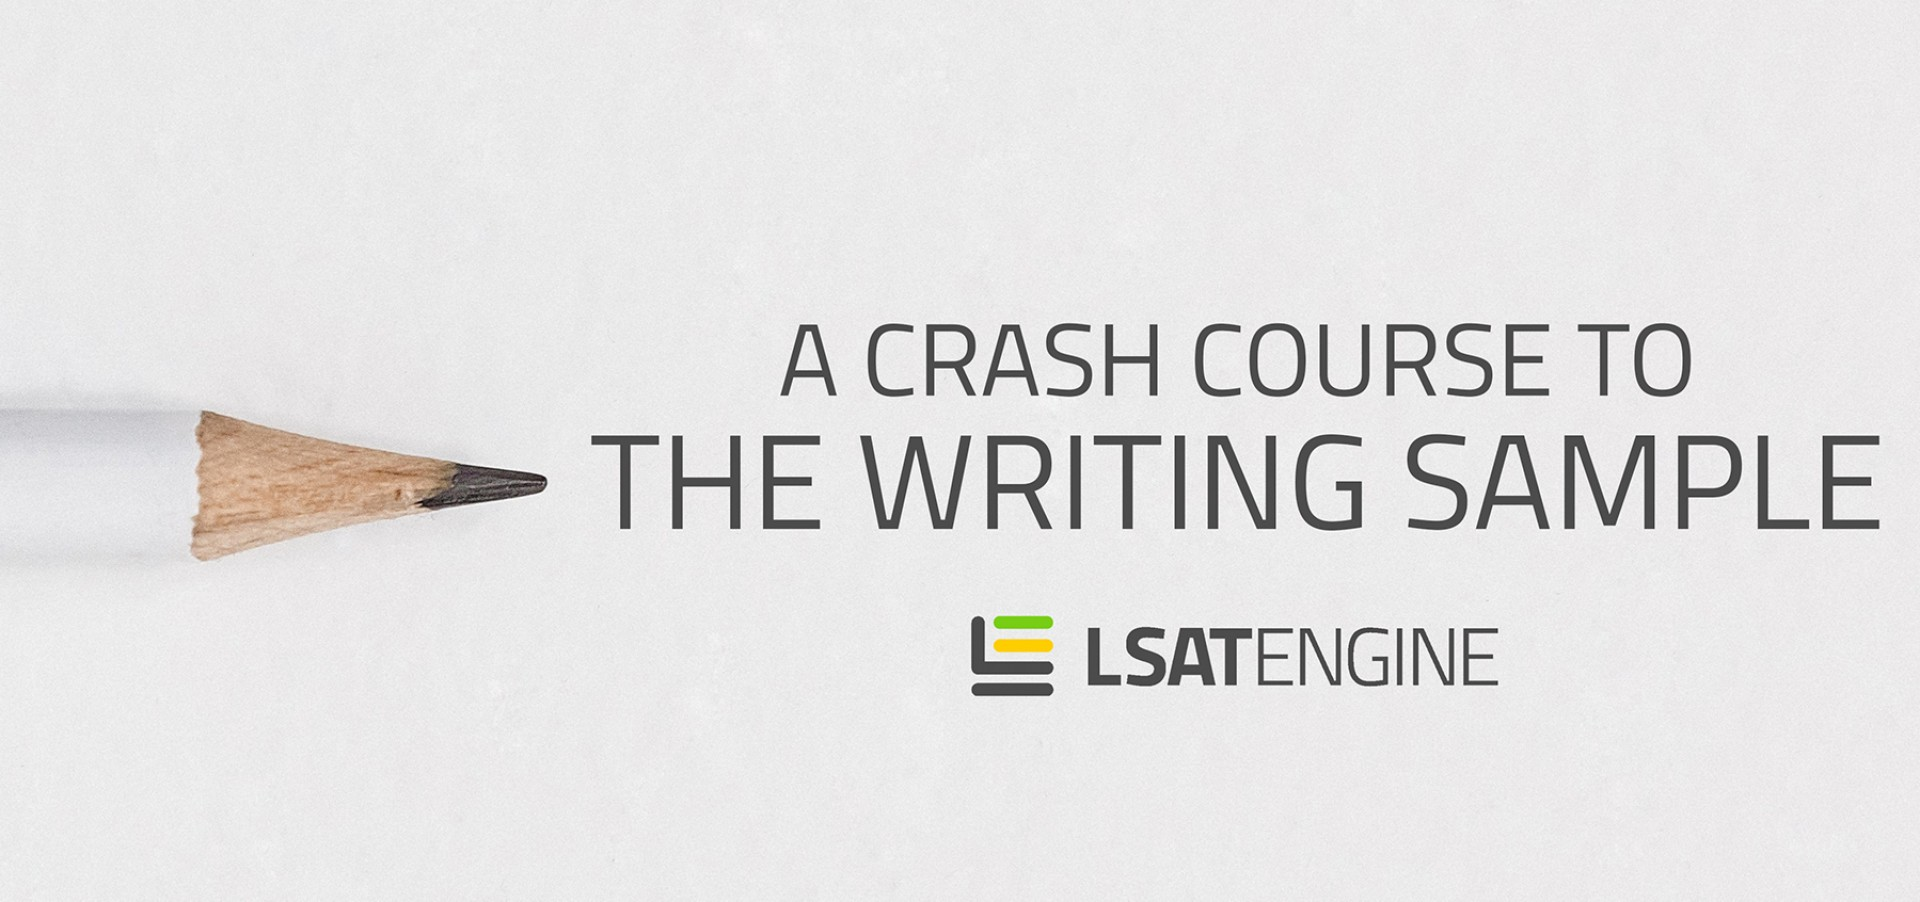 015 Essay Example Lsat Writing Sample Heading Amazing Questions Topics Examples 1920